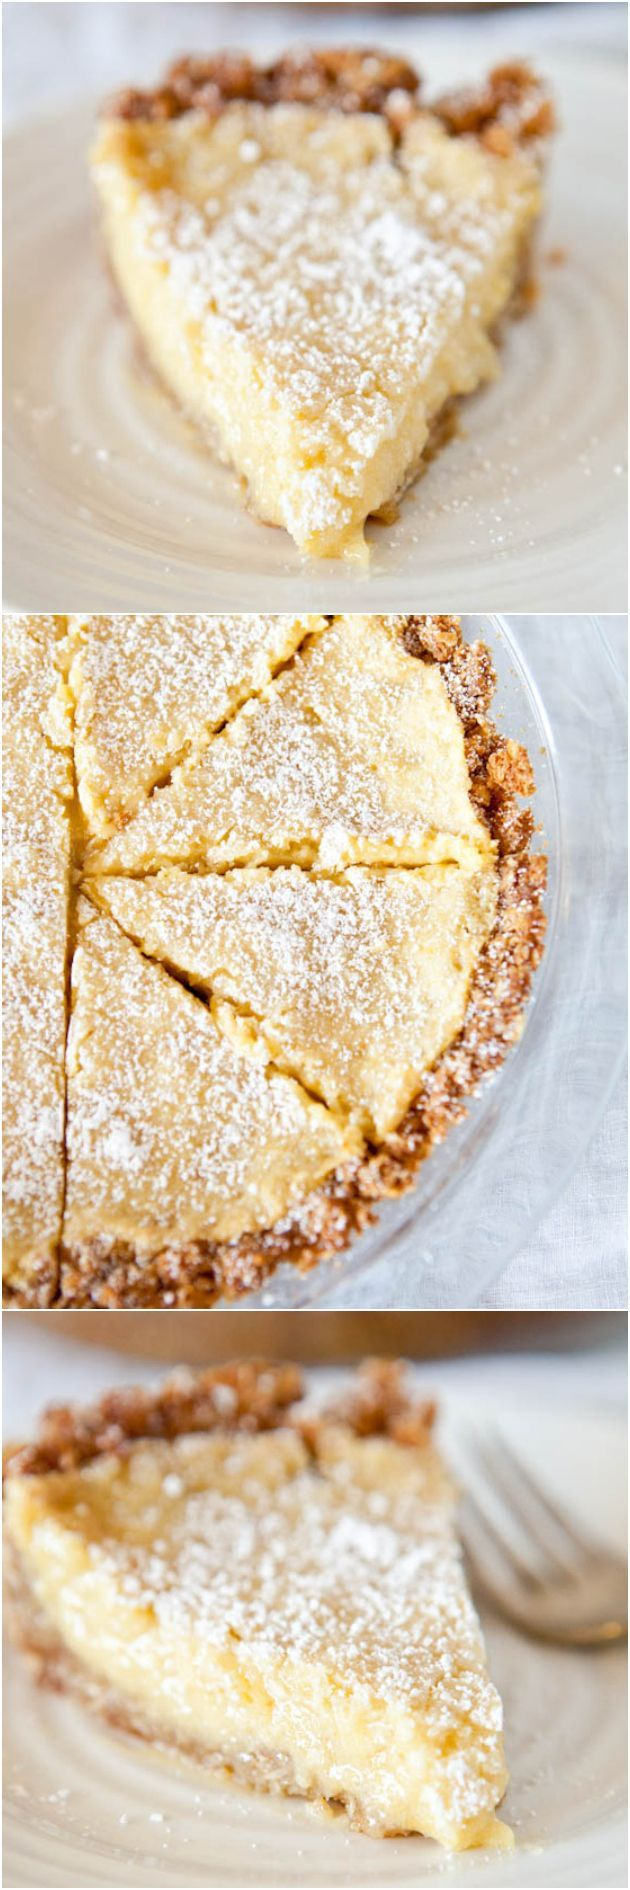 Crack Pie from the Momofoku Milkbar cookbook - There's a reason this pie has the name it has and it definitely lives up to the hype!